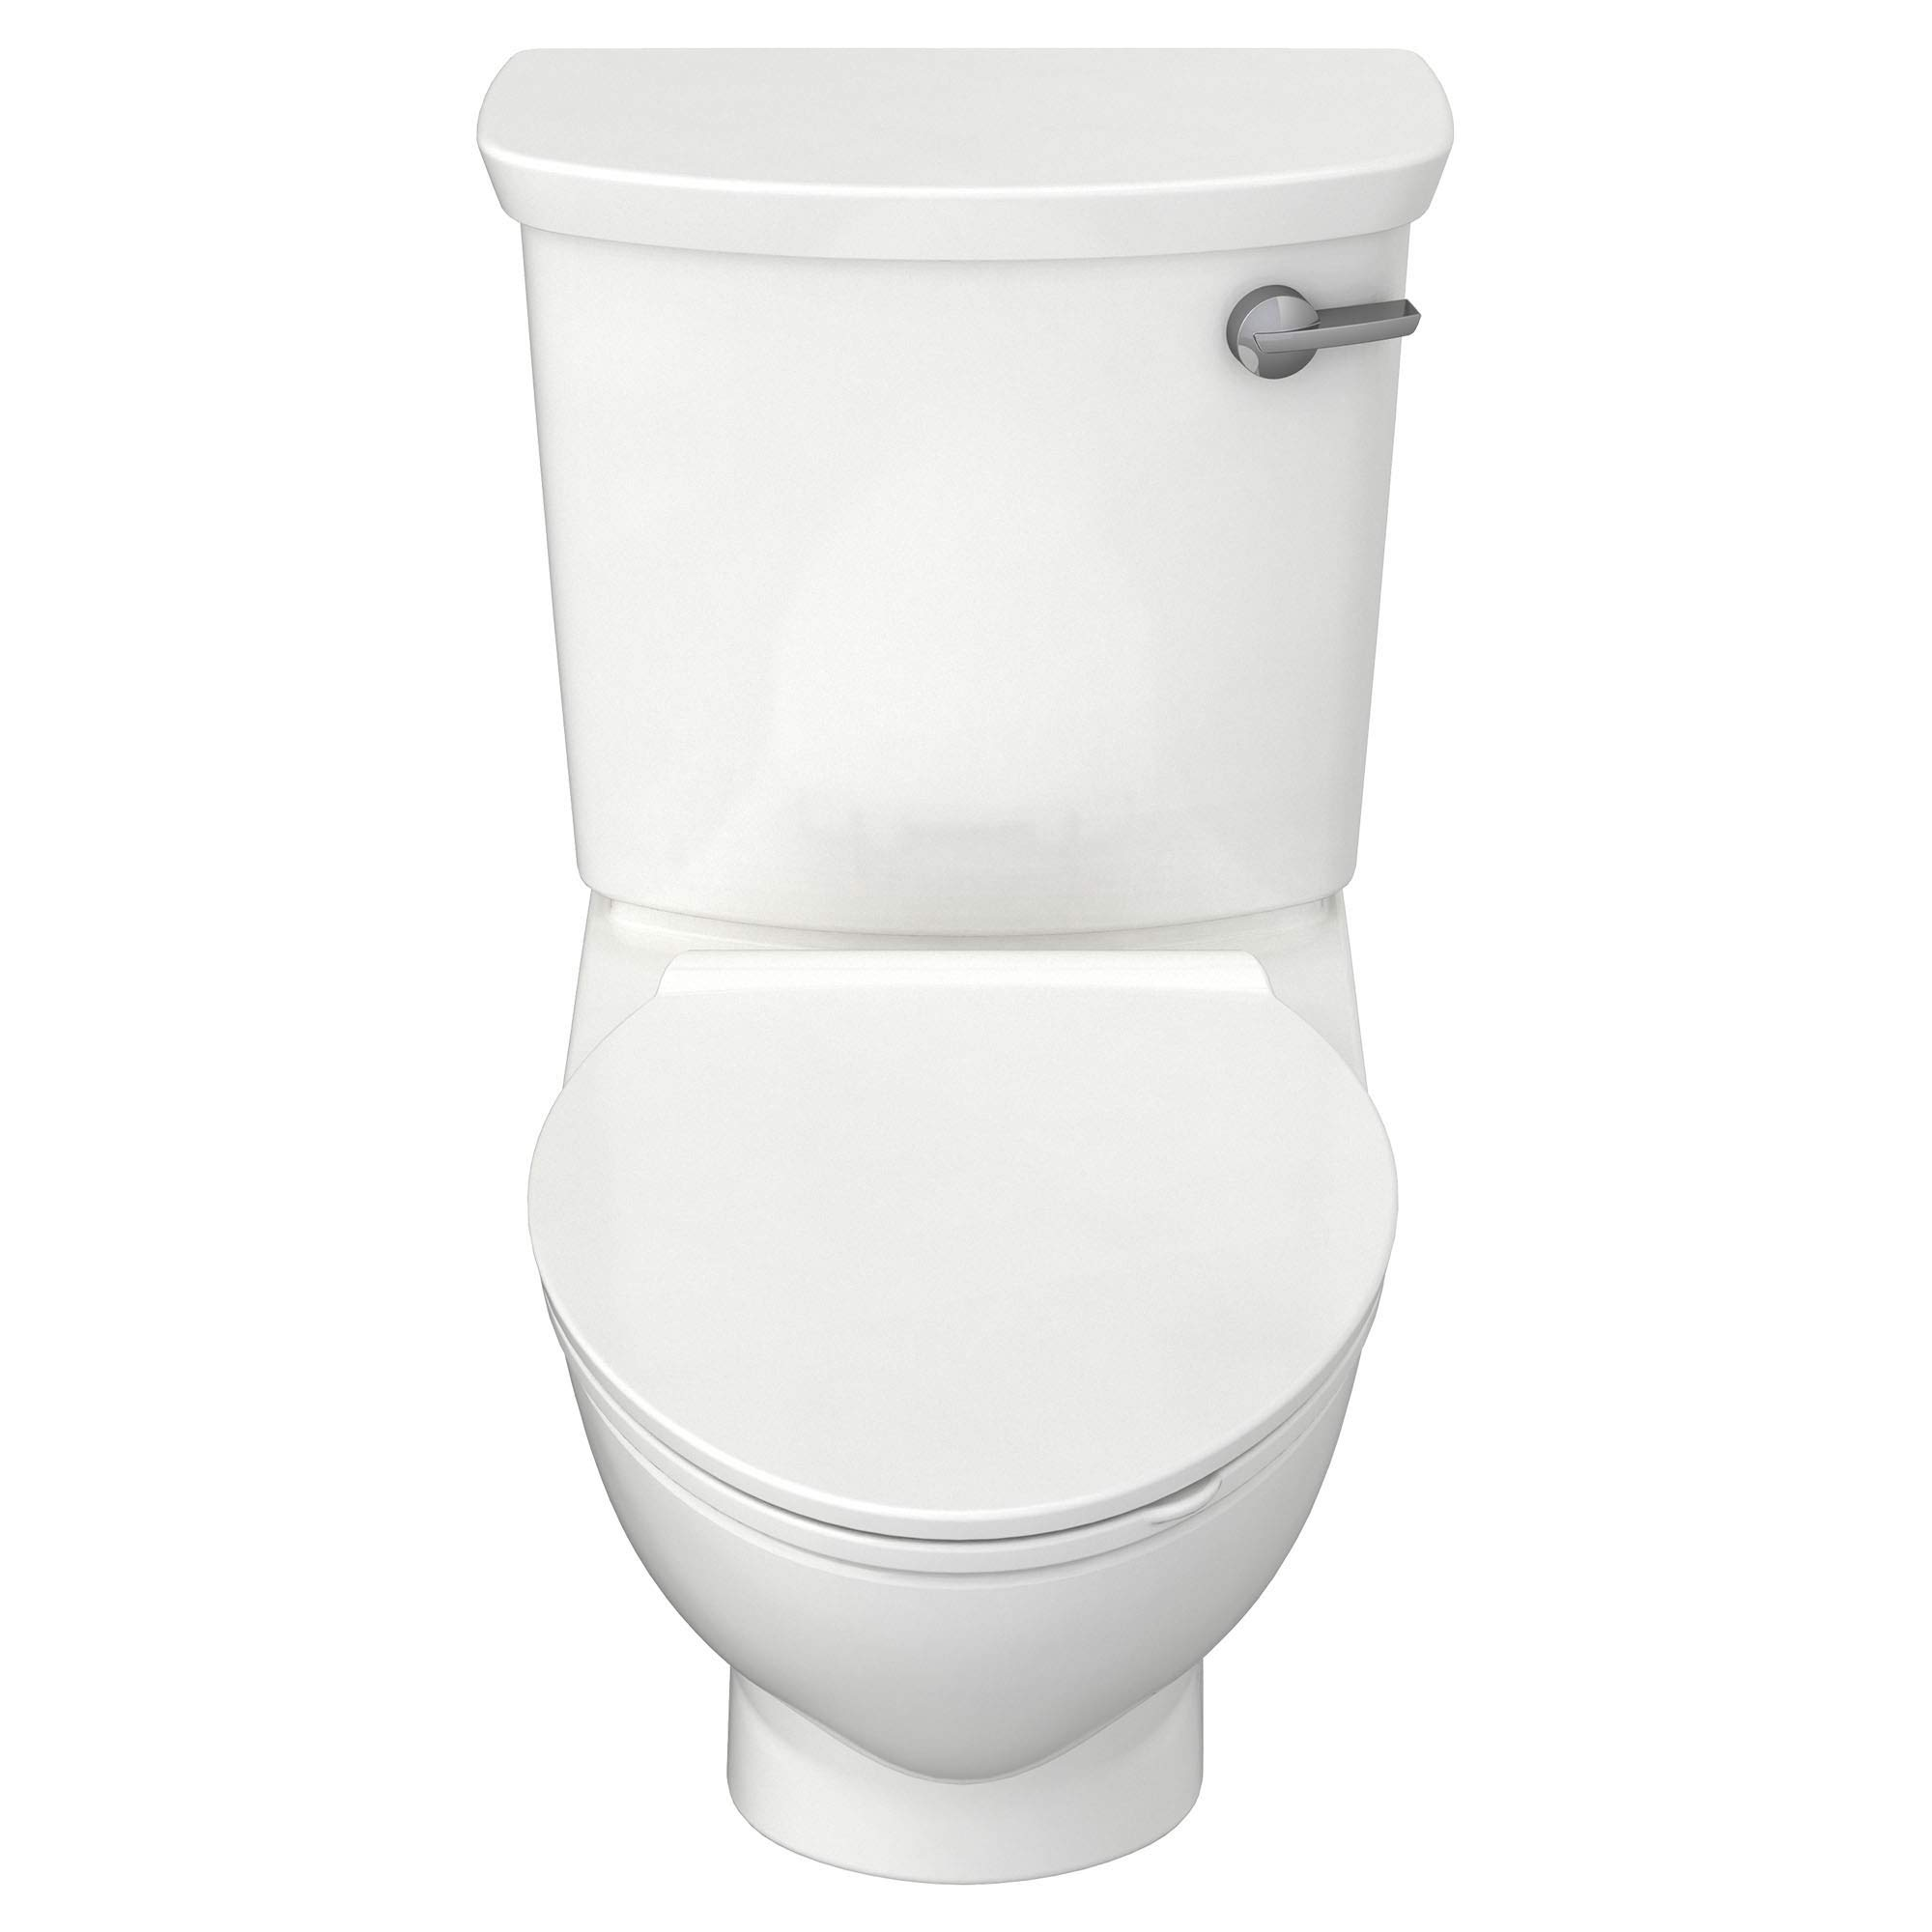 American Standard 2882108.020 Glenwall VorMax Wall-Hung Toilet with Right Hand Trip Lever White